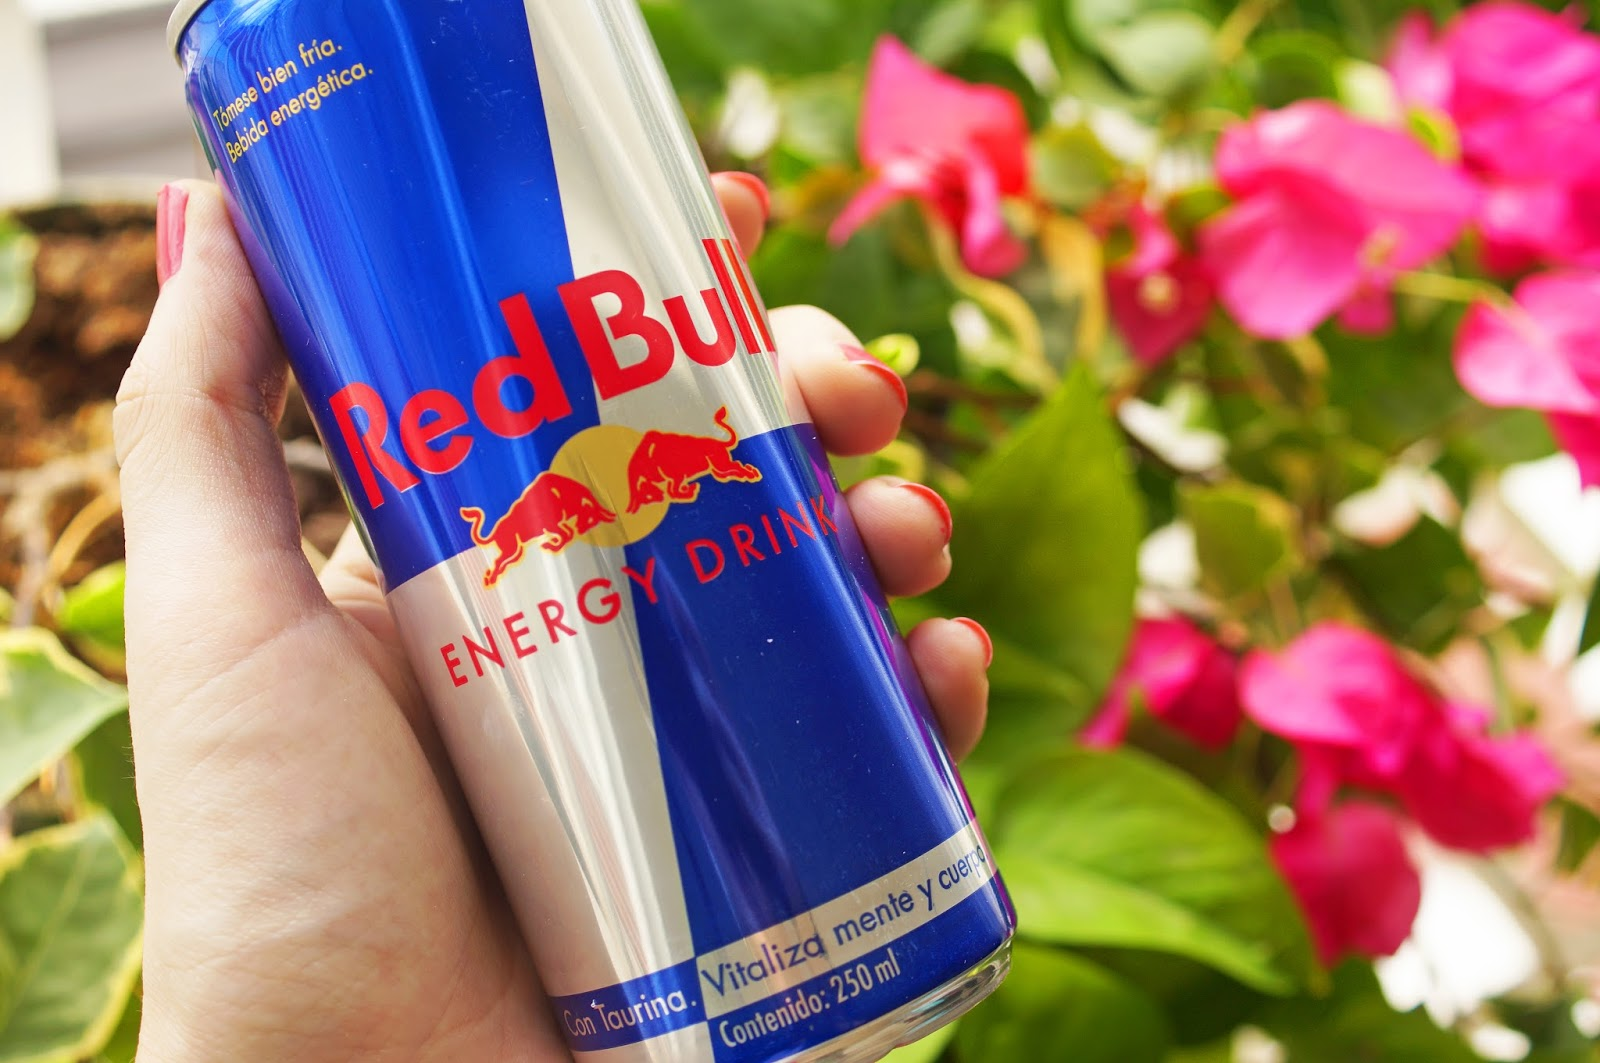 Fill yourself with energy with just one can of Redbull!